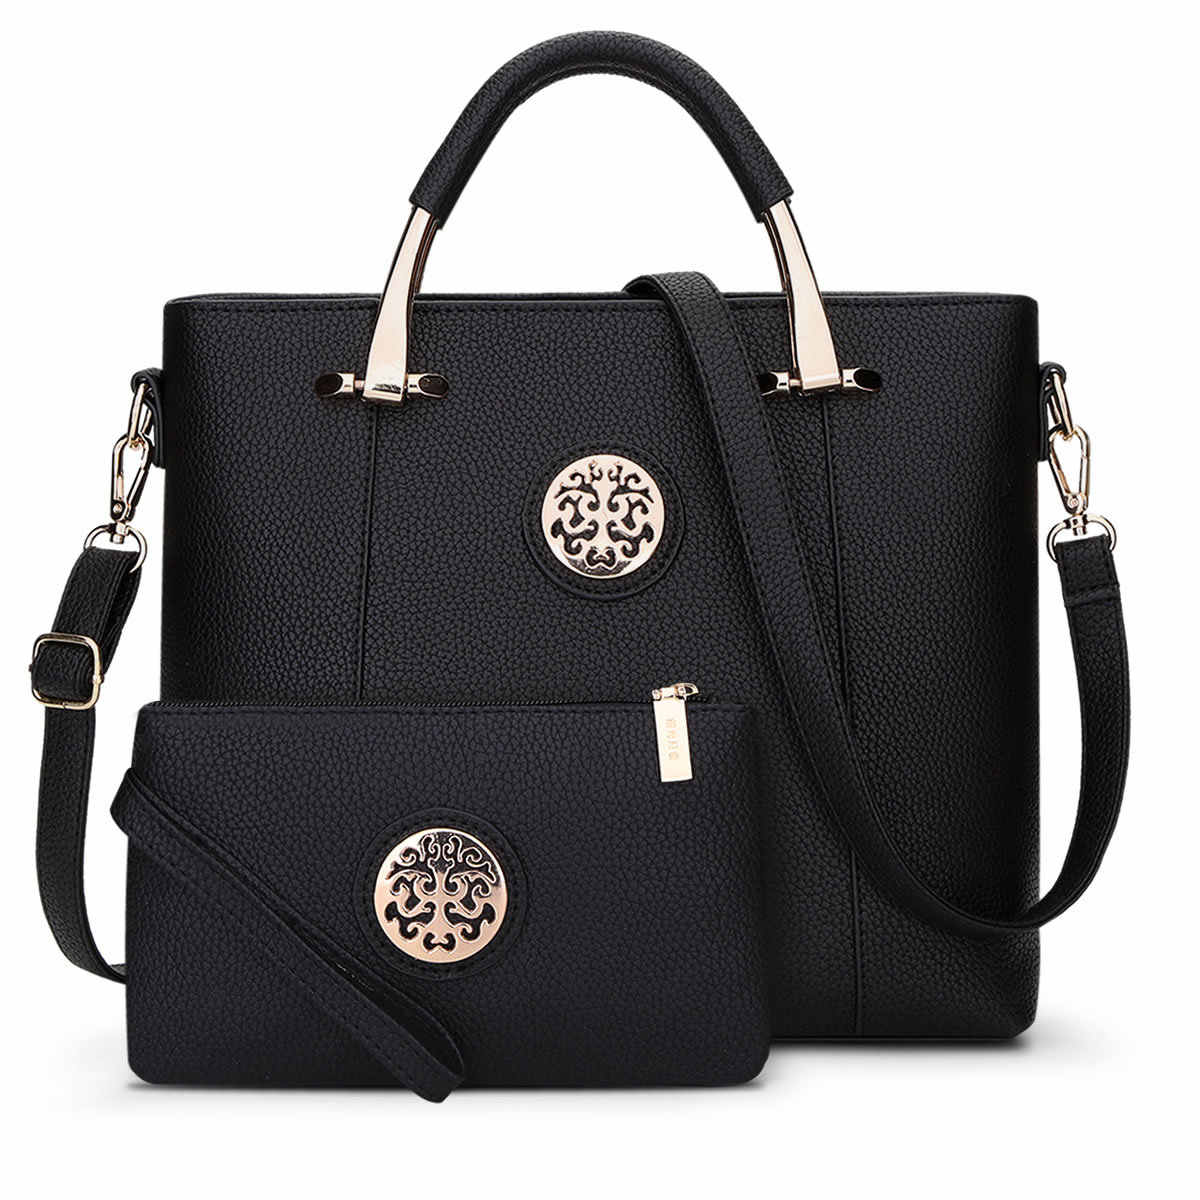 Womens Handbags And Purses Black Women